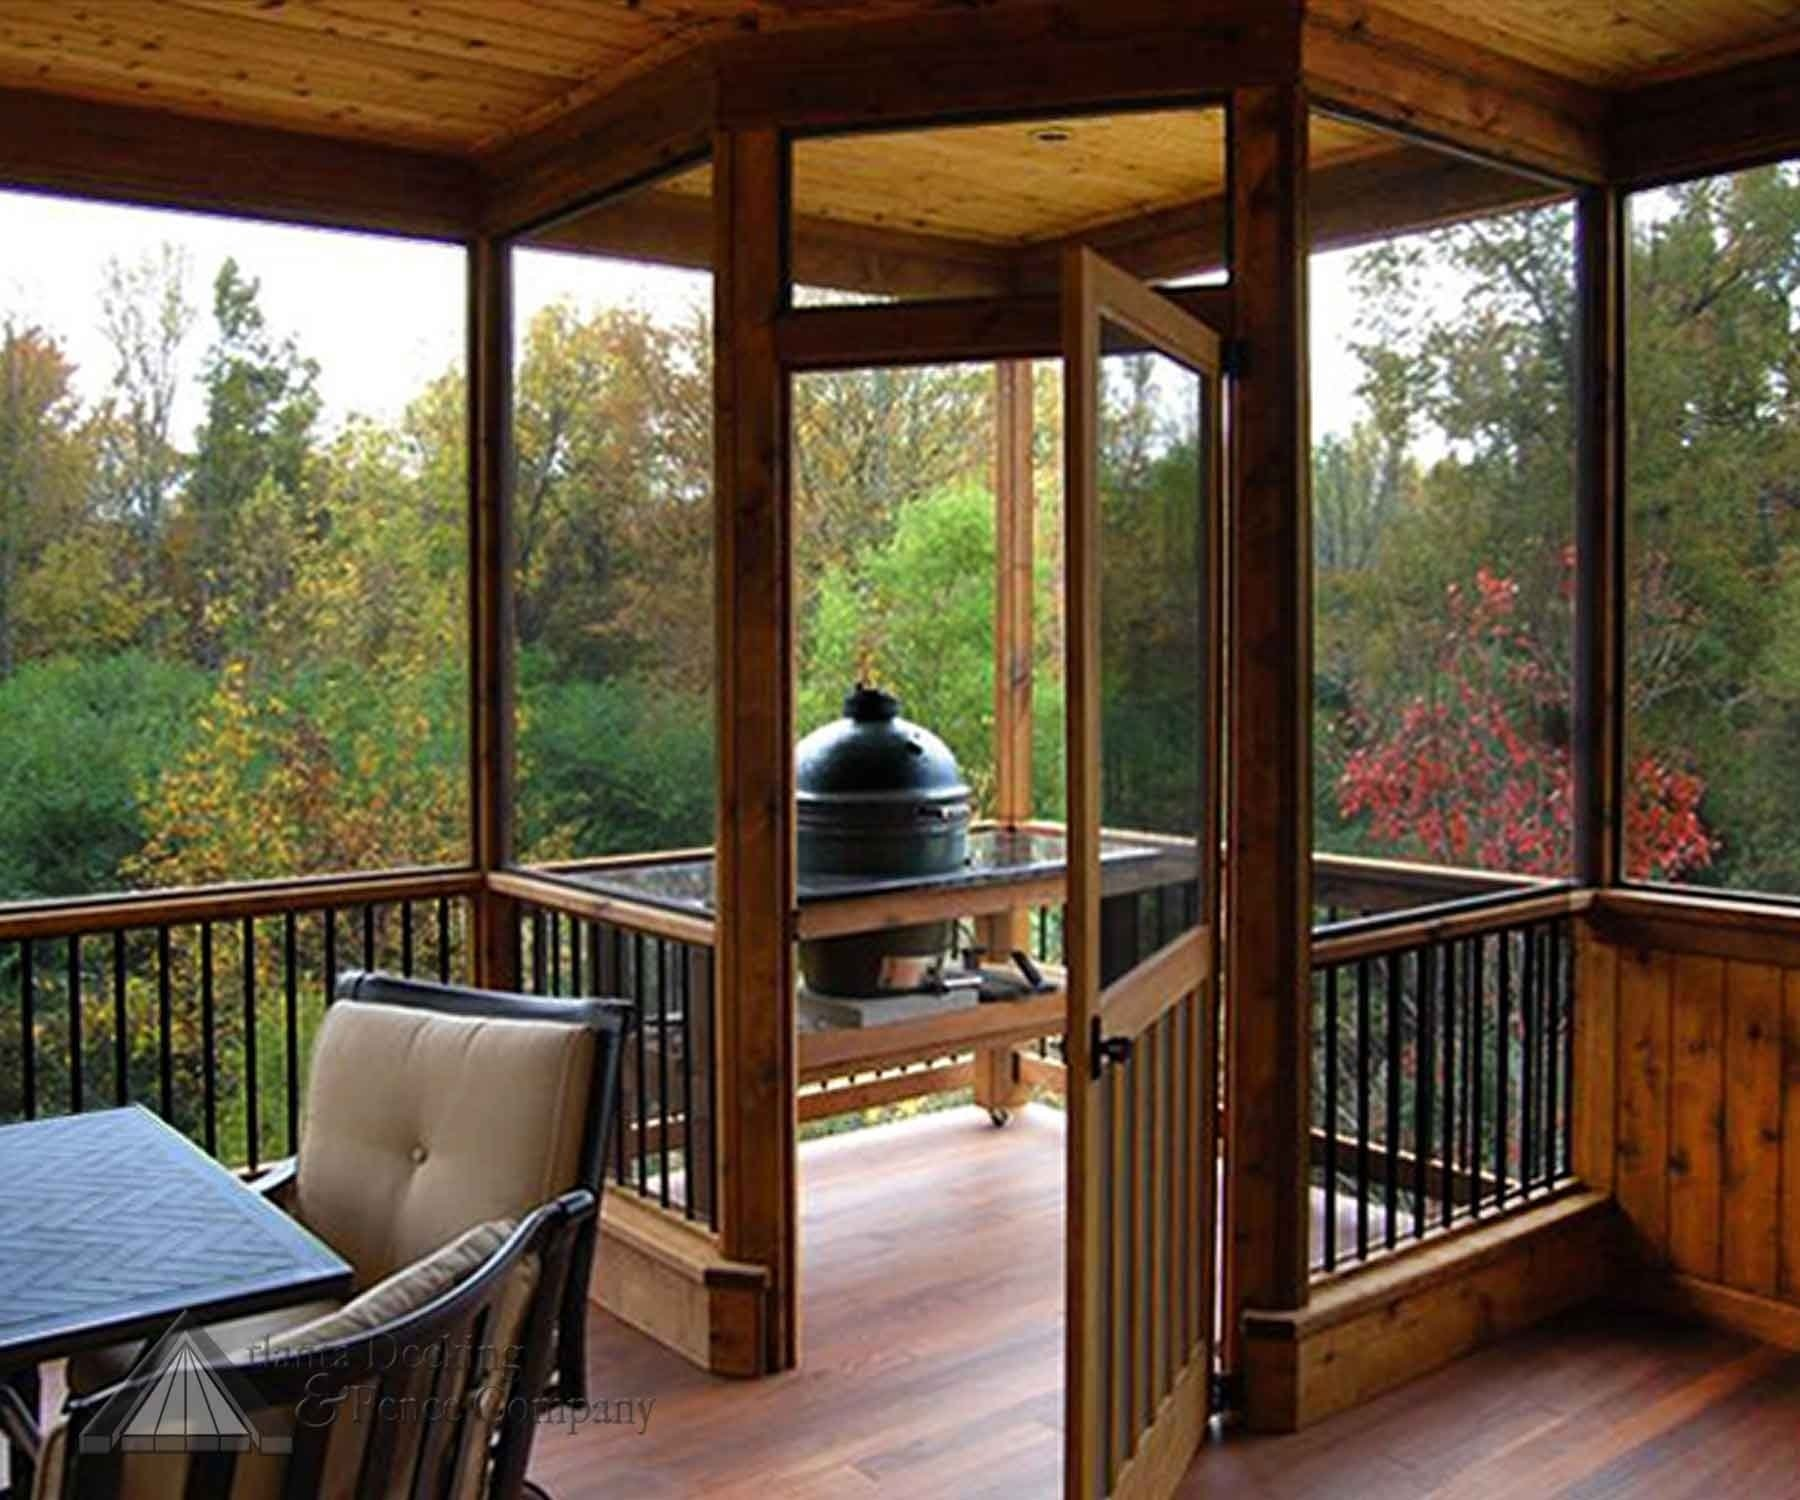 10 Most Recommended Screened In Porch Design Ideas luxury screened porch ideas home designing within screened in 2021